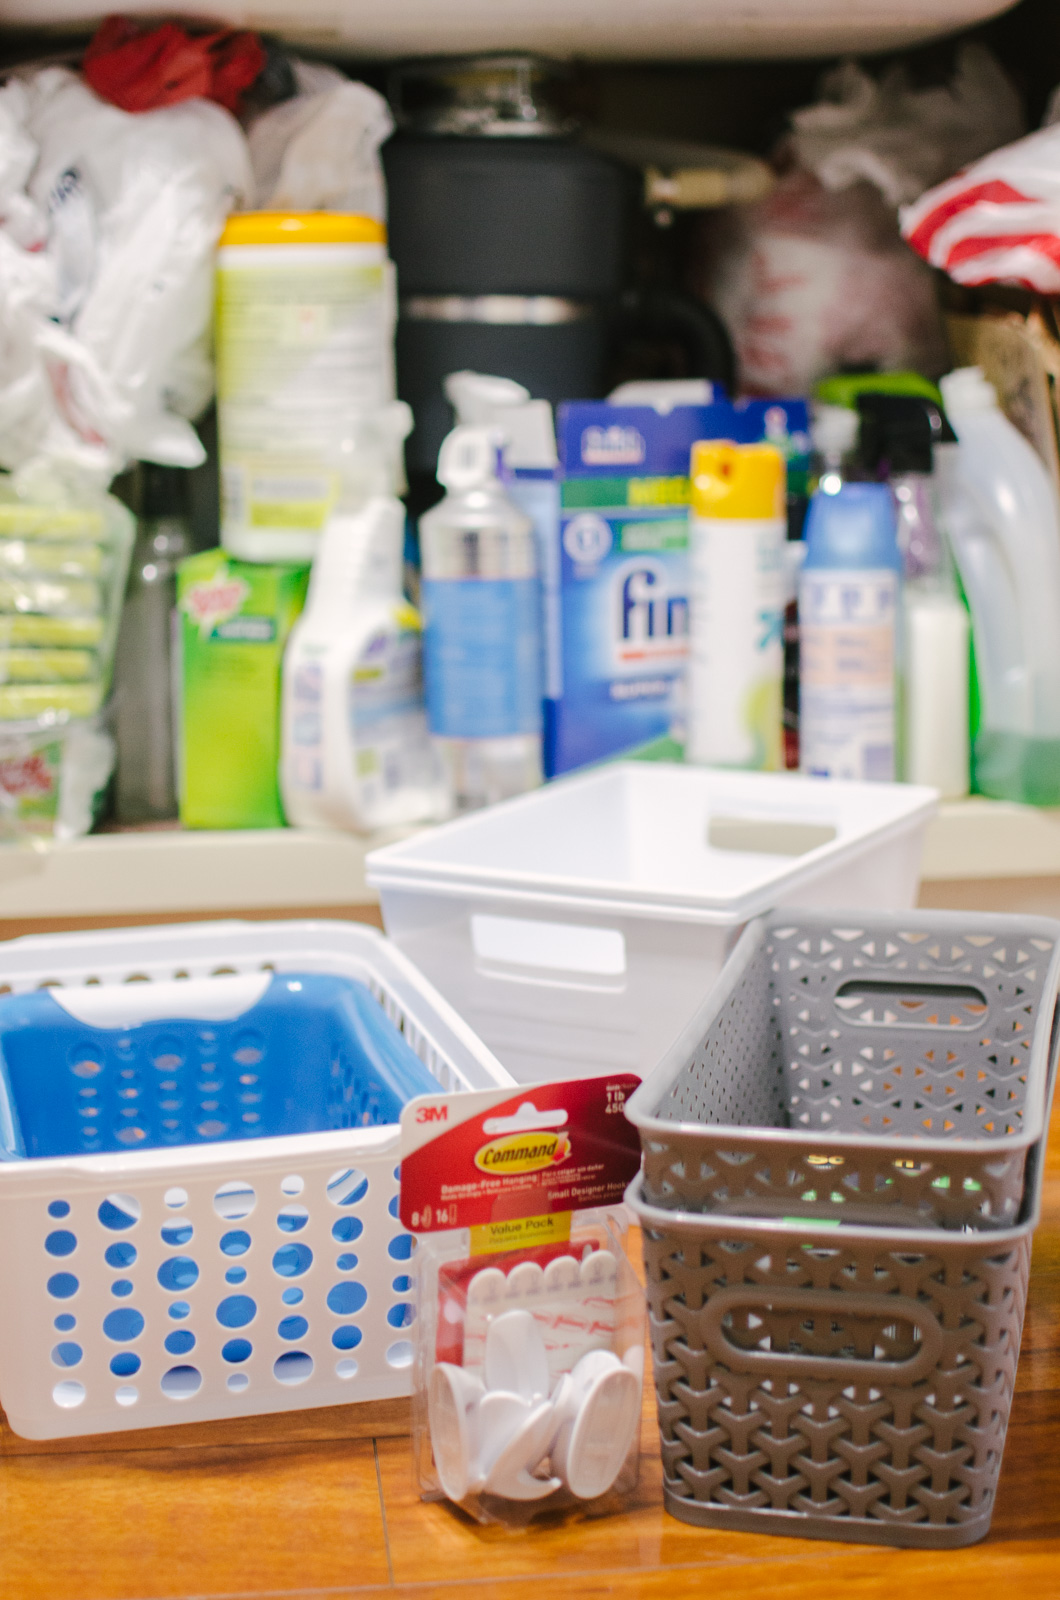 under the sink organization dollar store - You're going to love this kitchen organization before and after! Spend $5 and completely revamp your under sink cabinets! | bylaurenm.com